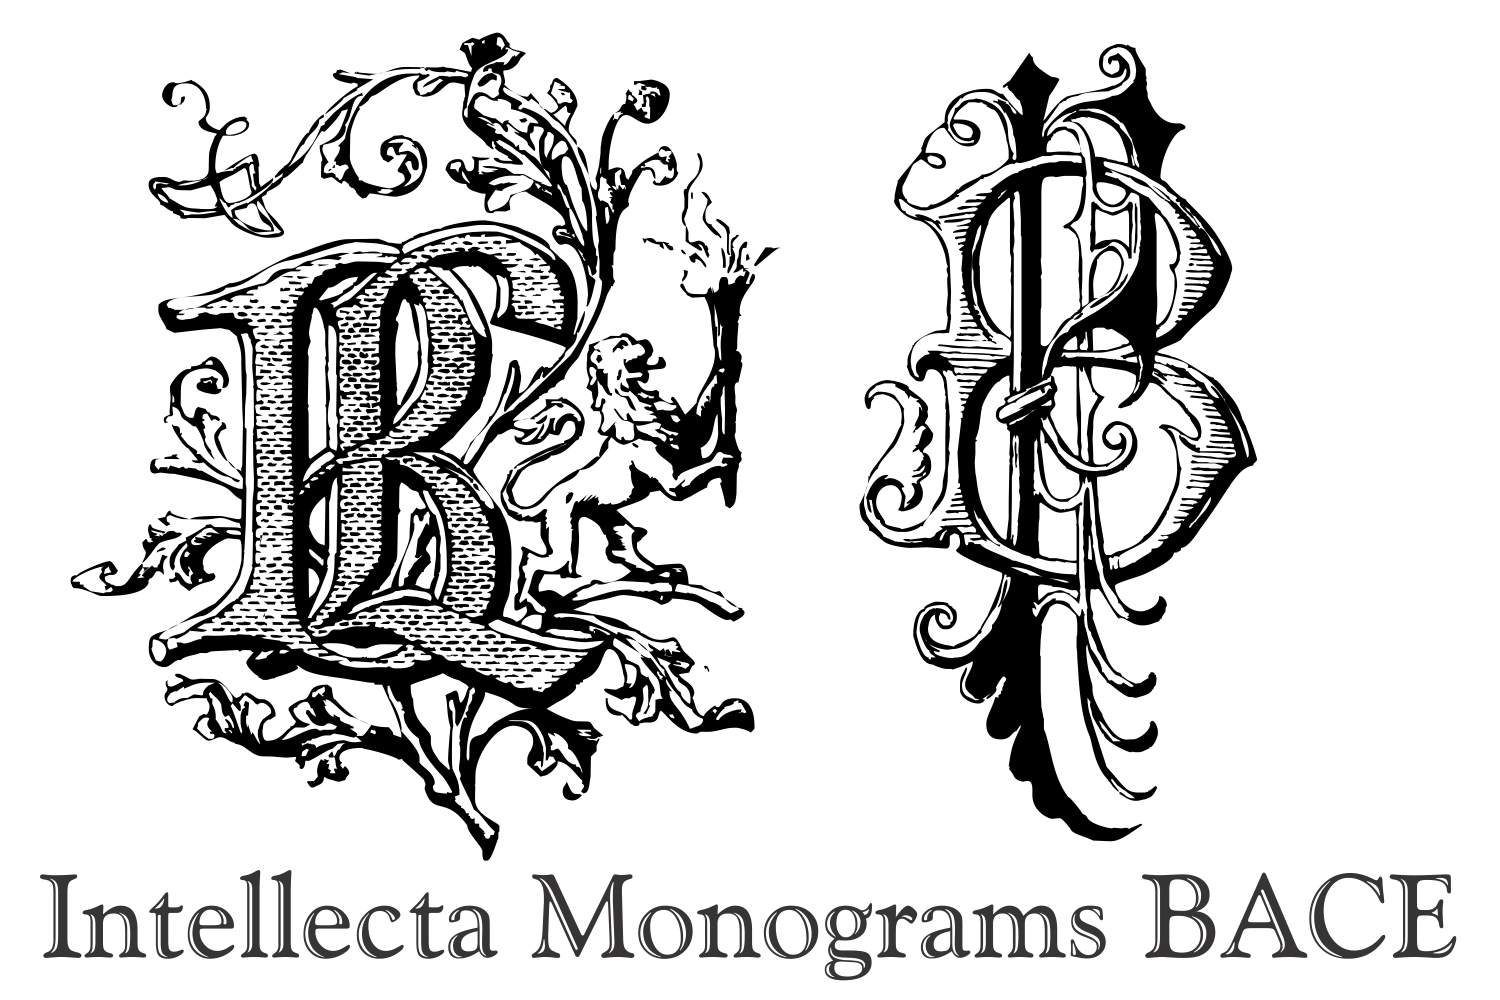 Intellecta Monograms BACE example image 2